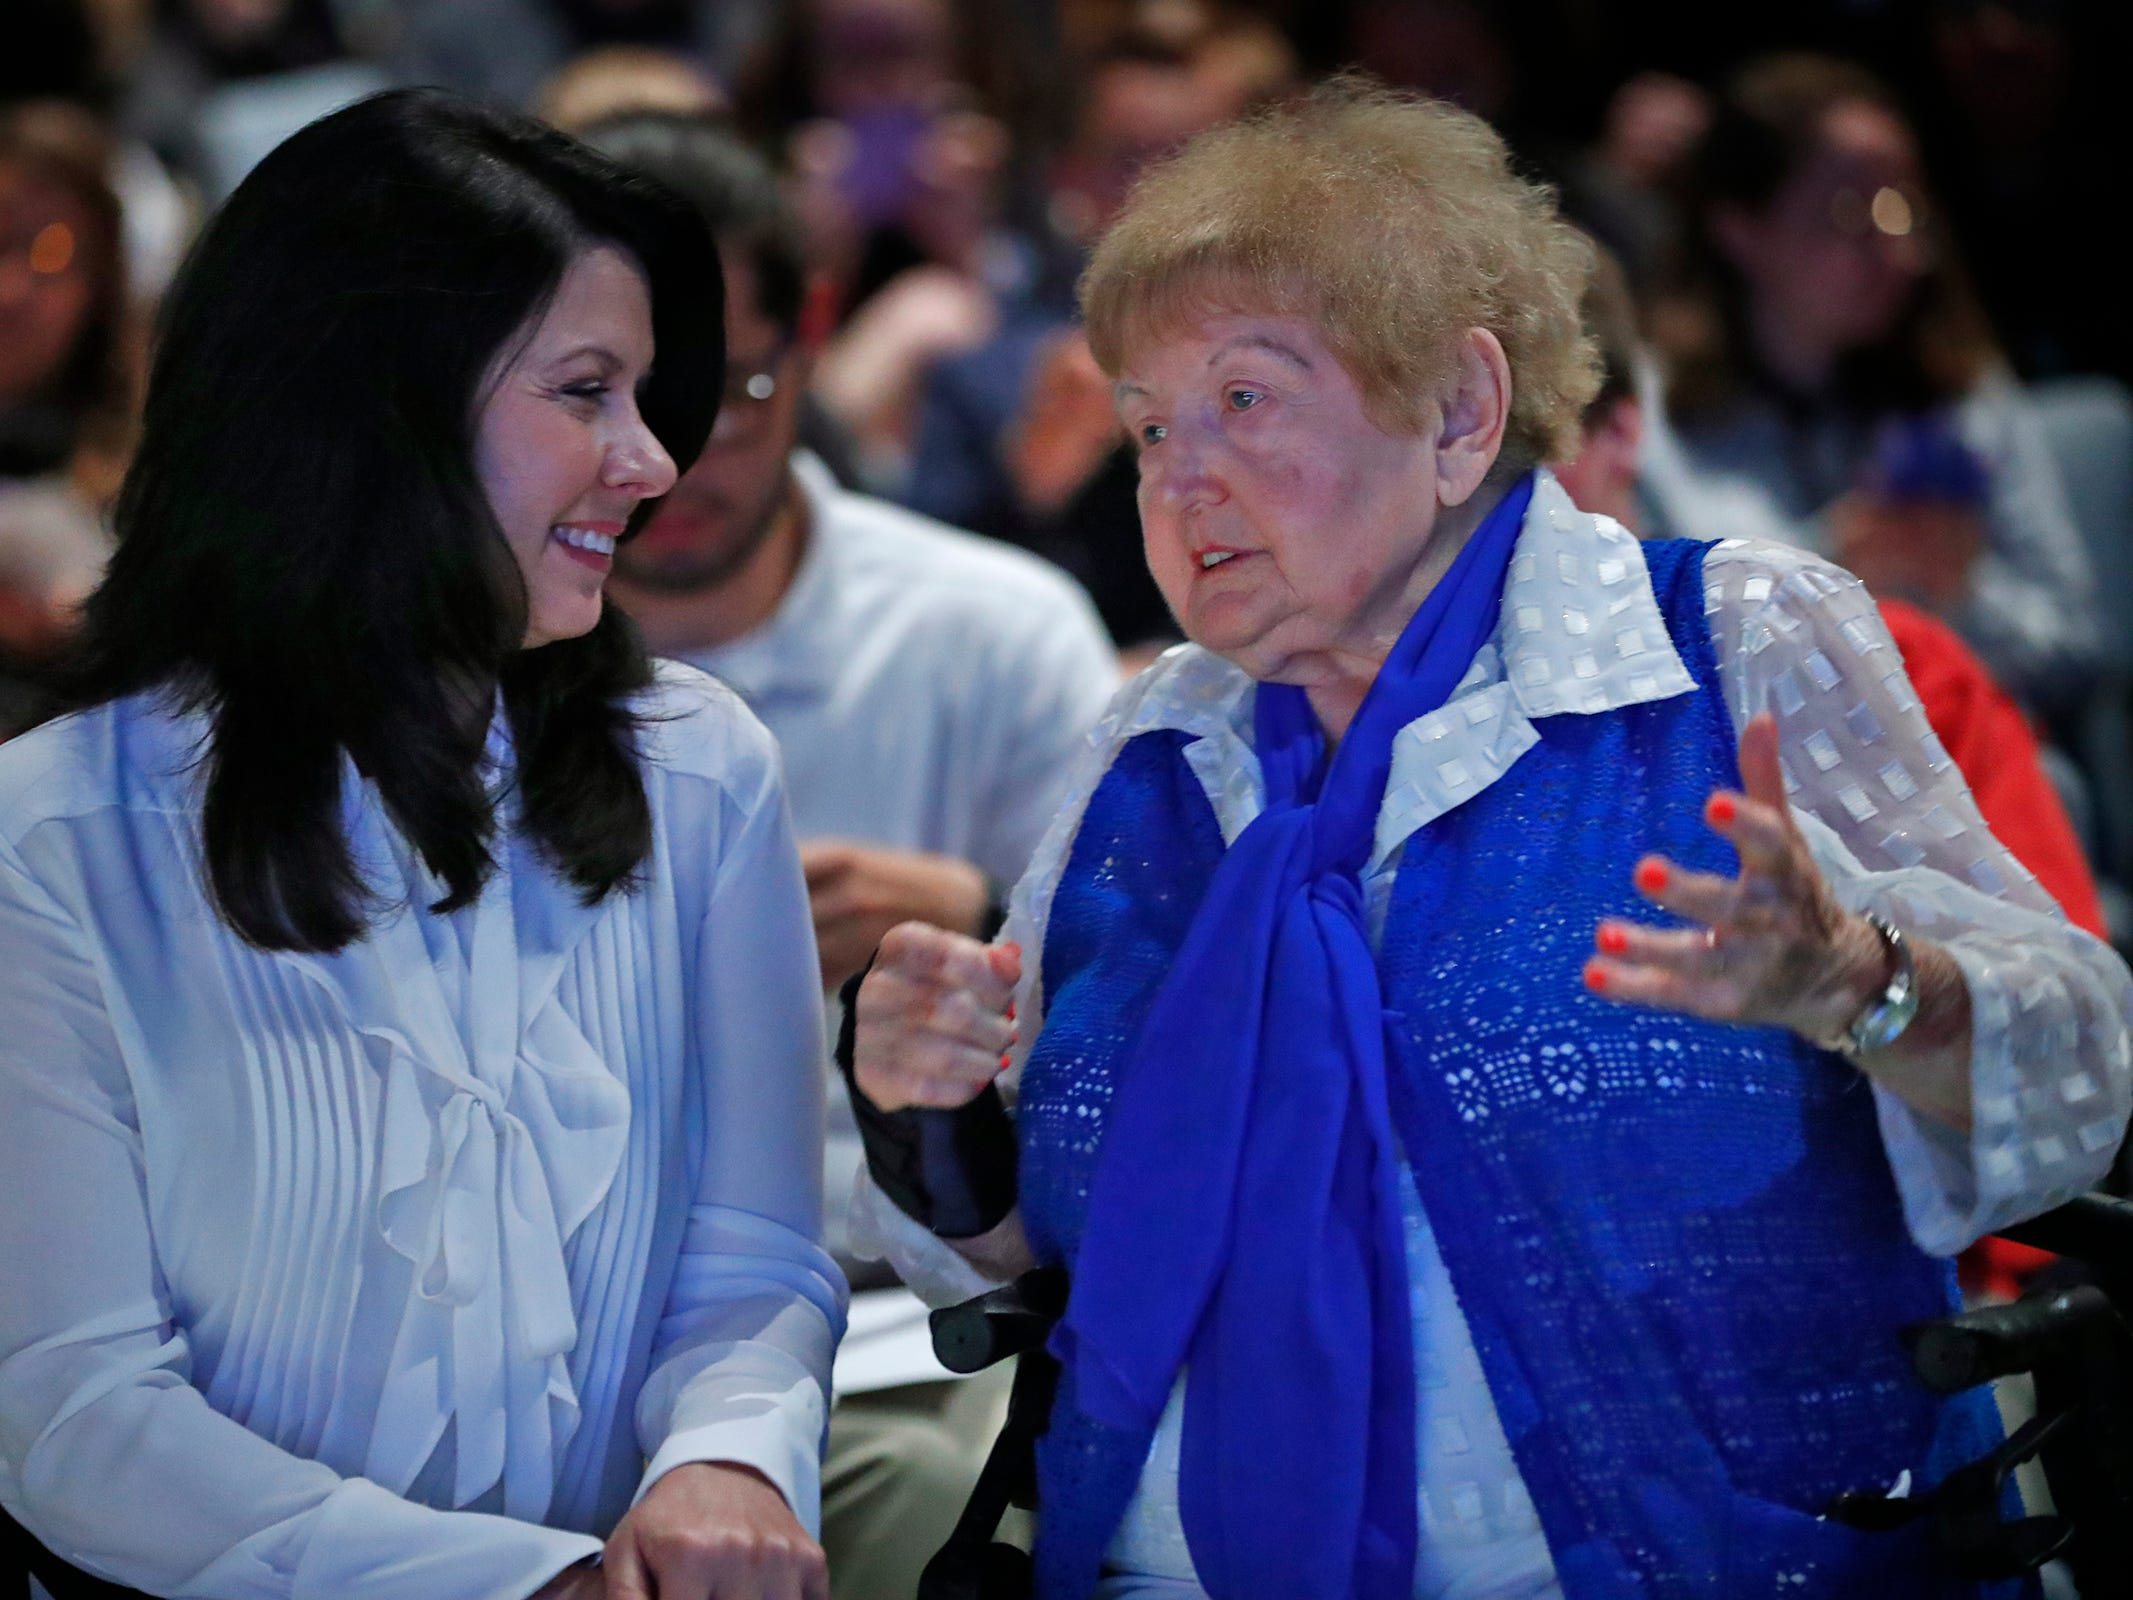 """Holocaust survivor Eva Kor, right, speaks with Indiana First Lady Janet Holcomb after the viewing of """"Eva,"""" at Newfields, Monday, Sept. 17, 2018.  Students viewed the documentary """"Eva,"""" about Kor, and then helped in the planting of the Eva Kor Peace Garden.  Kor also spoke with the students, asking them to think of one thing to make the world better."""